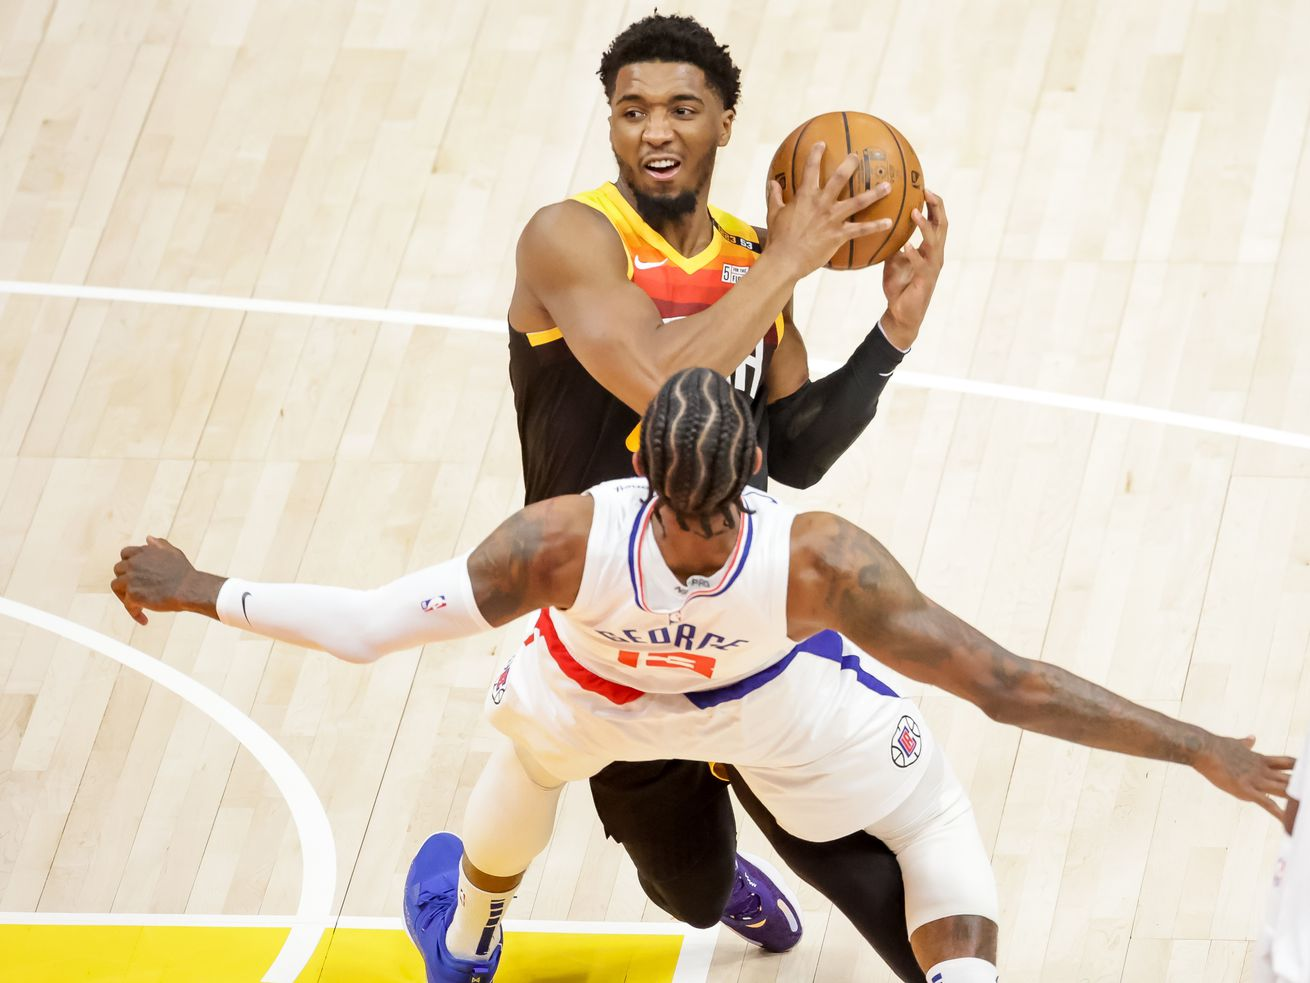 LA Clippers guard Paul George is charged with a foul as Jazz guard Donovan Mitchell drives during Game 1 in Salt Lake City.